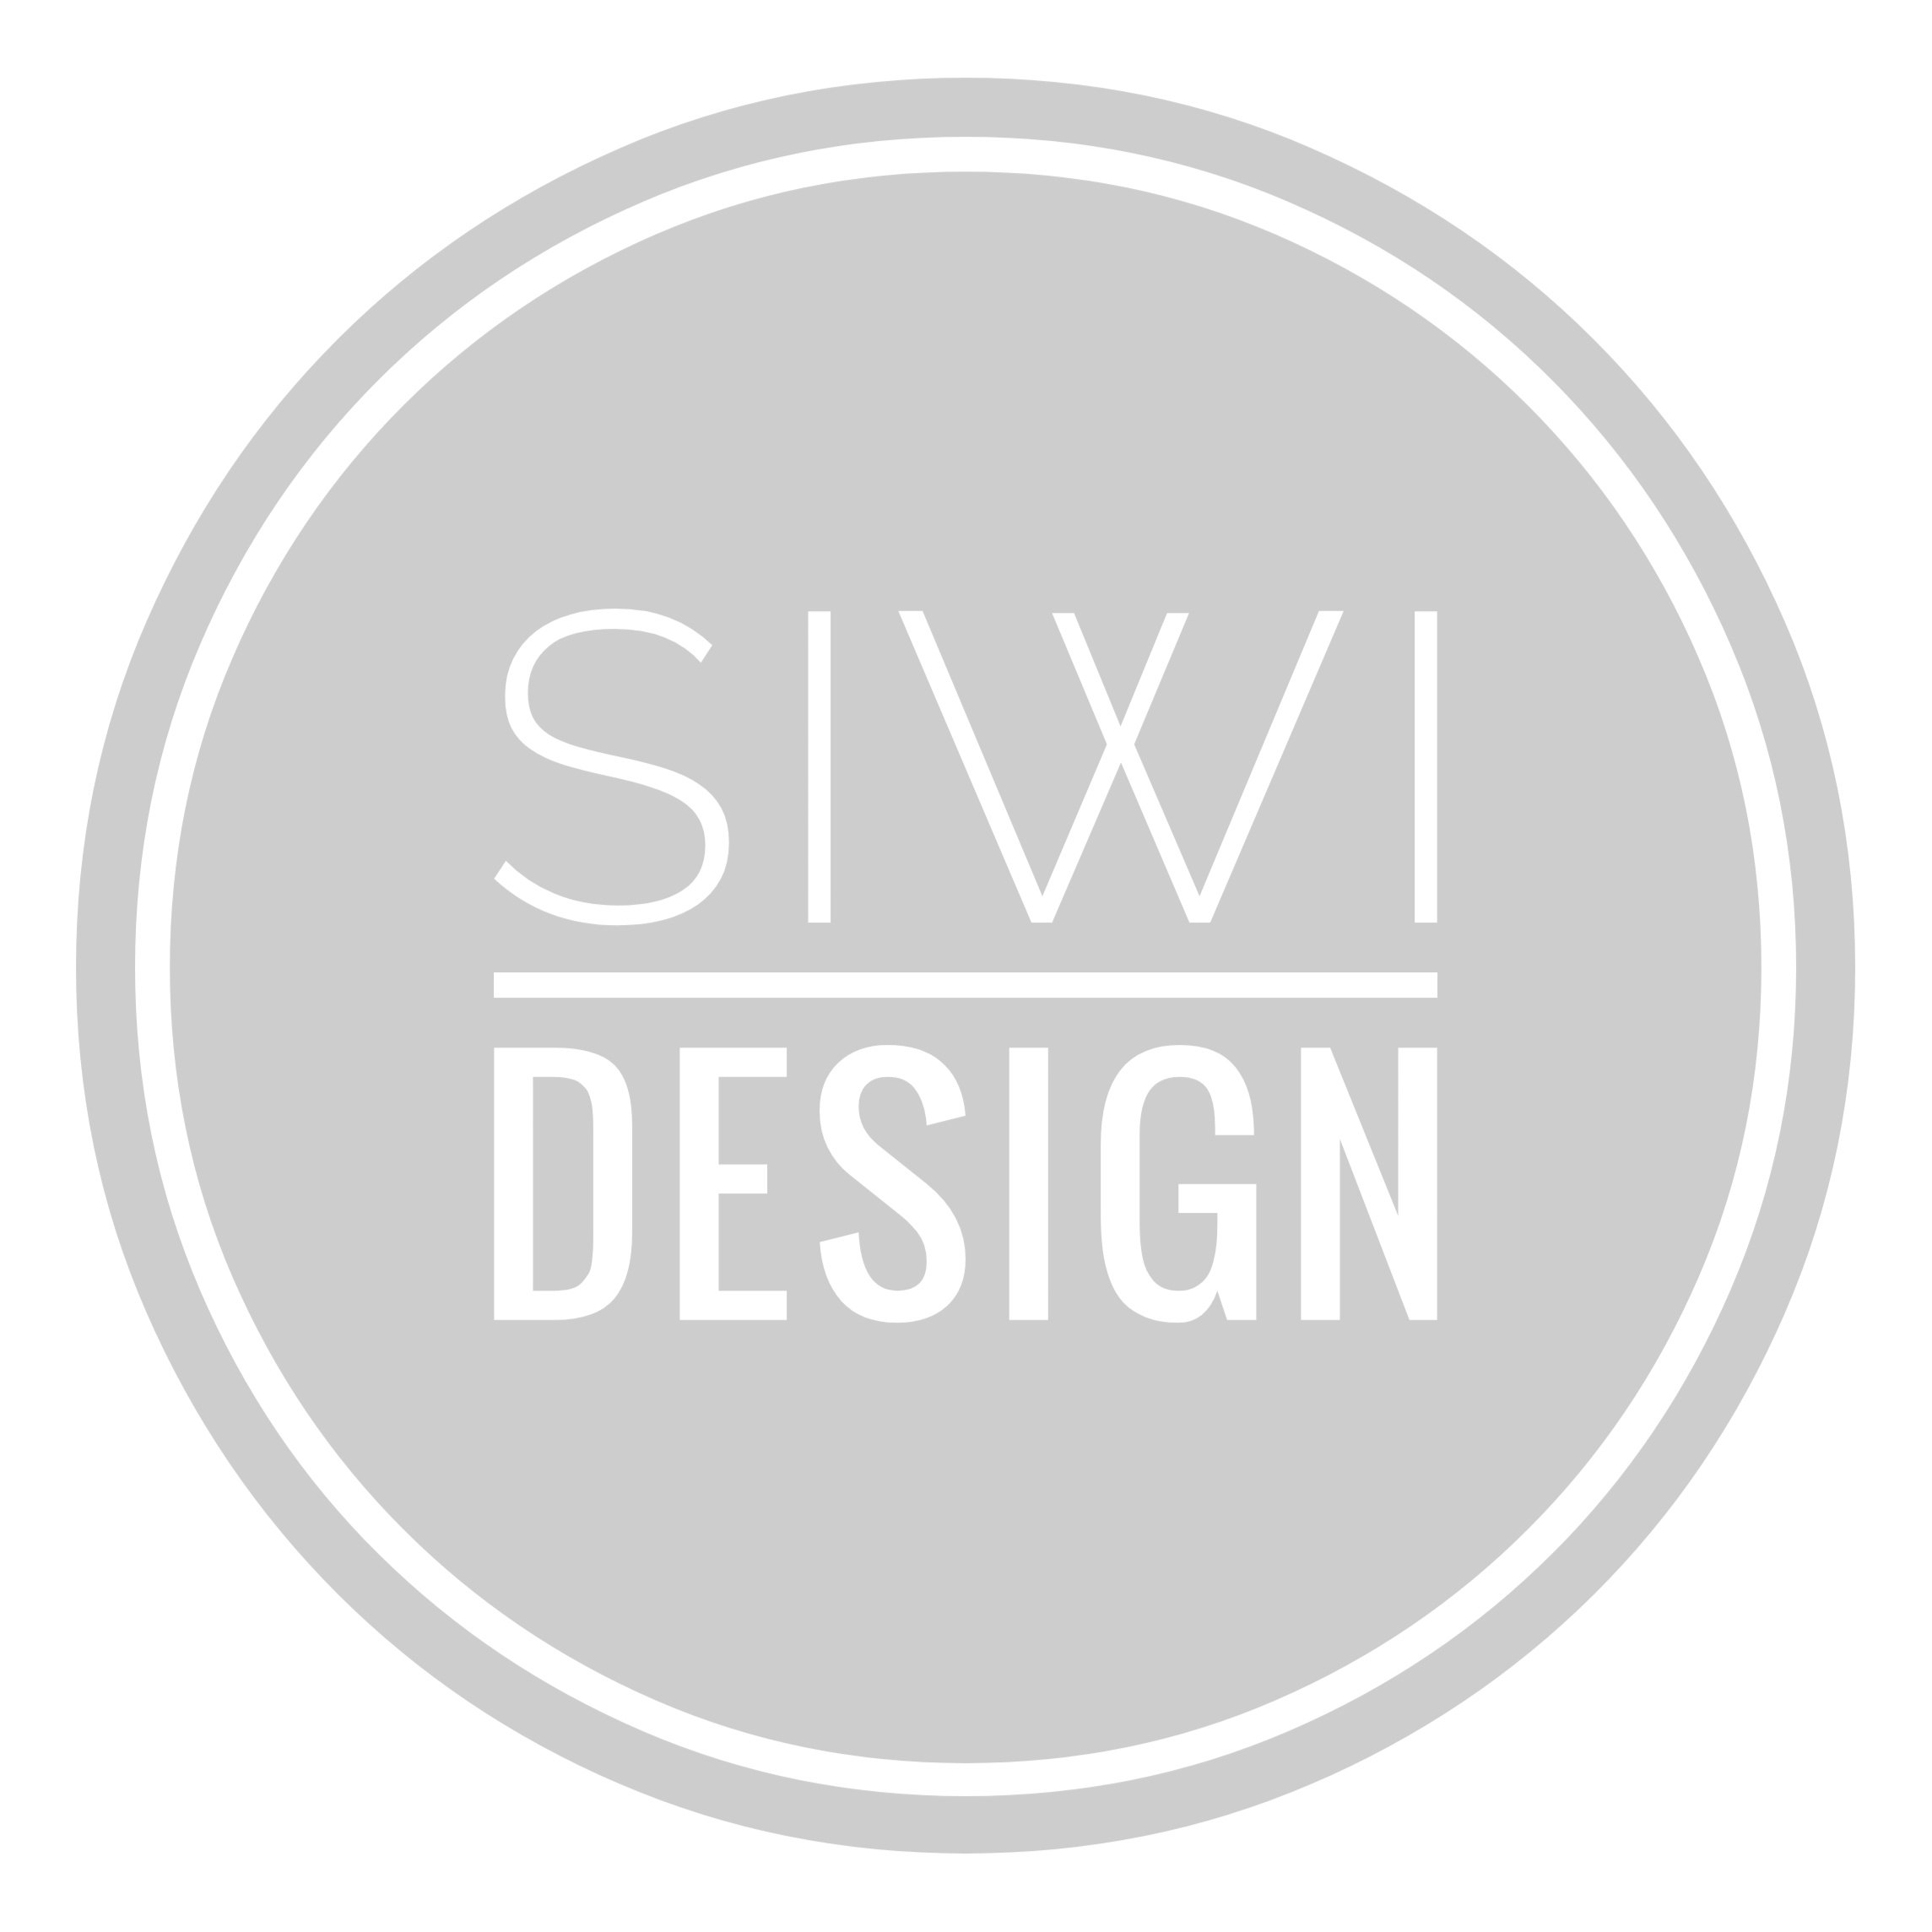 SiWiDesign's profile picture